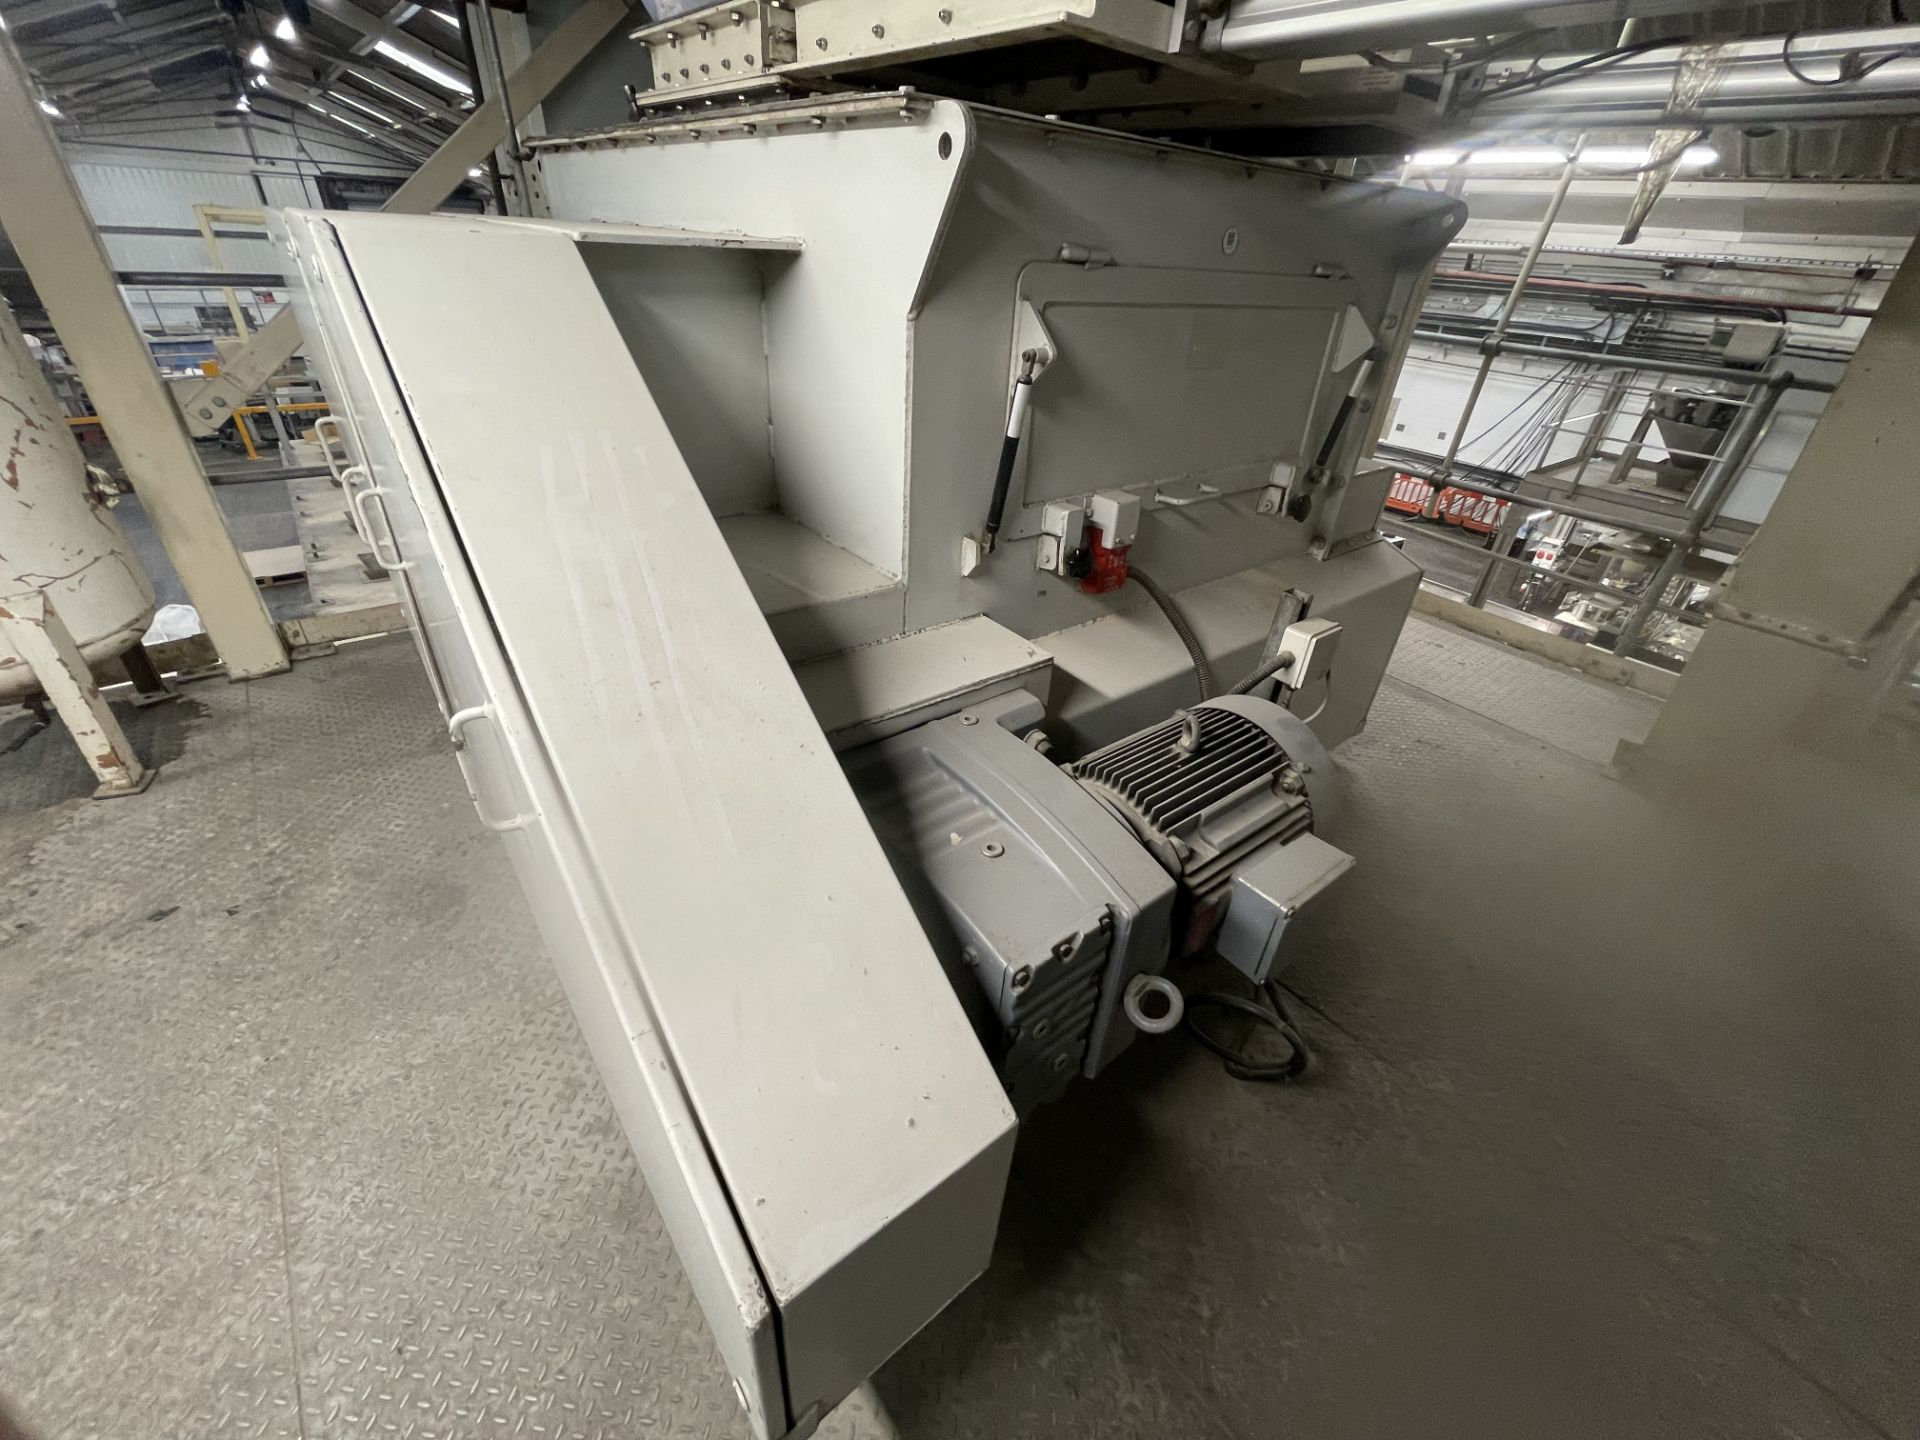 Pet Food Blending Line c/w Wynveen PM 750LH Stainless Steel Double Shaft Paddle Mixer - Image 8 of 63